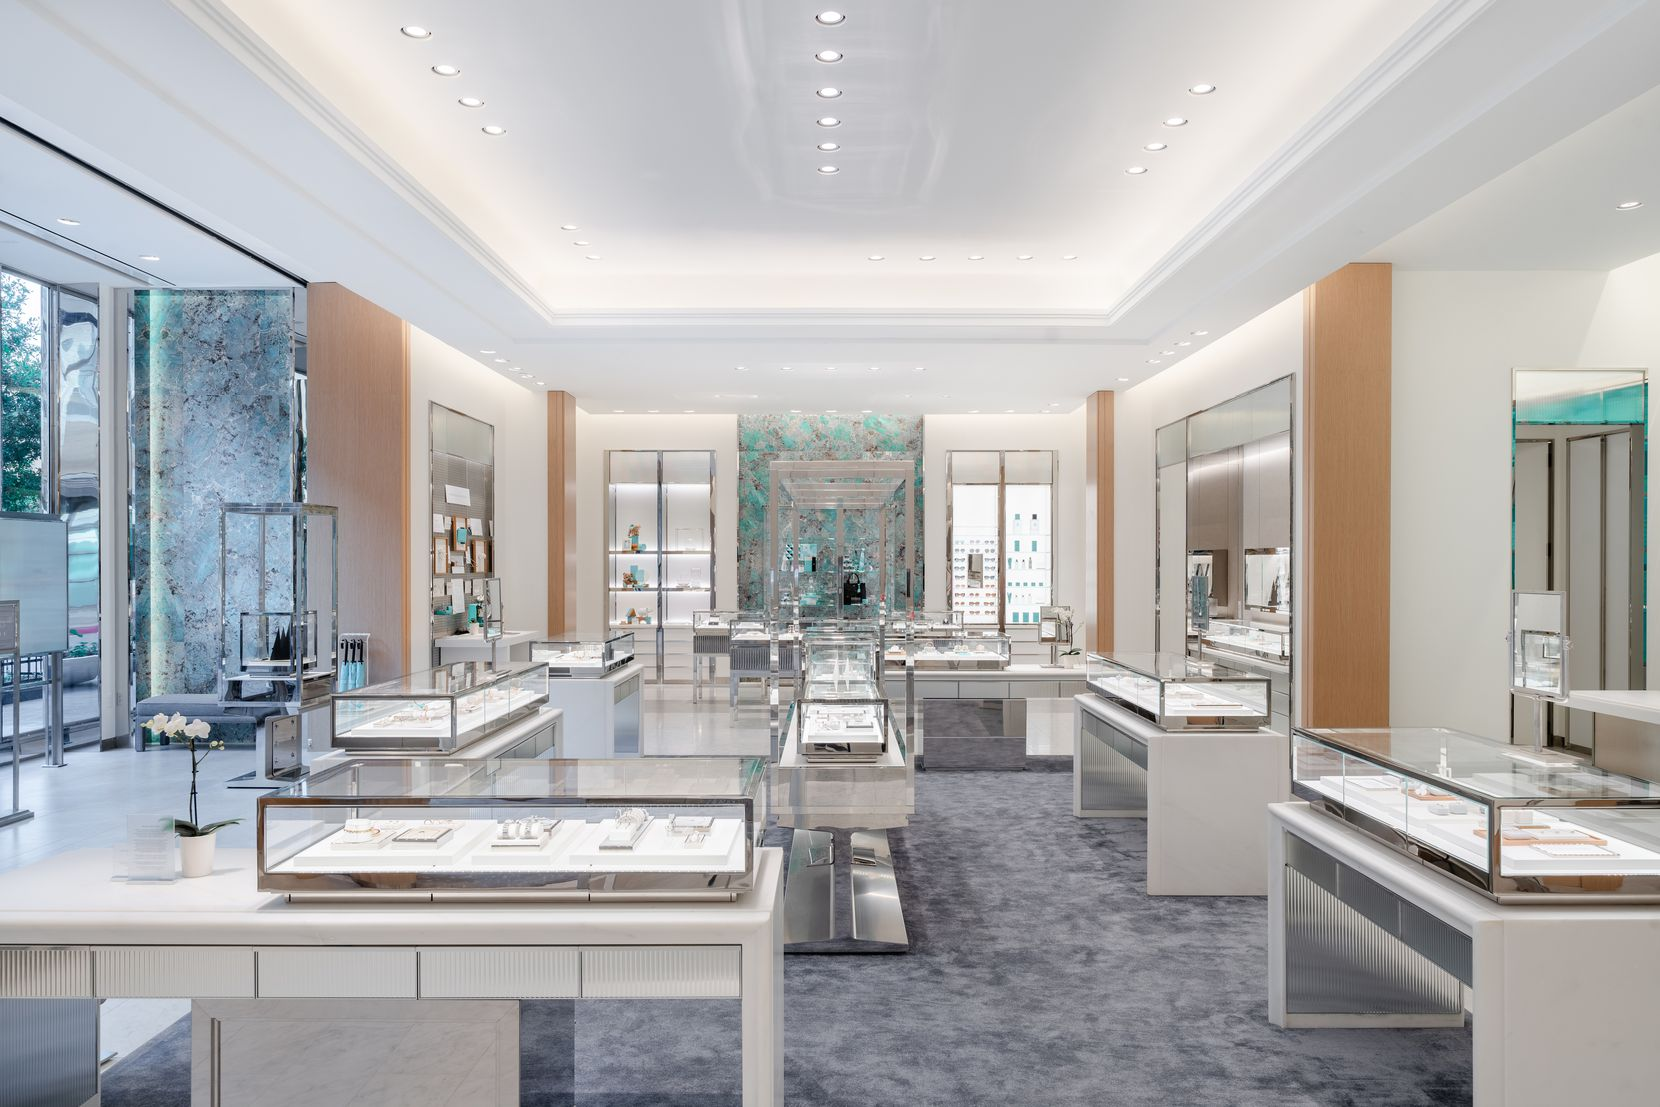 Interior of the new Tiffany & Co. store in Plano's Legacy West.